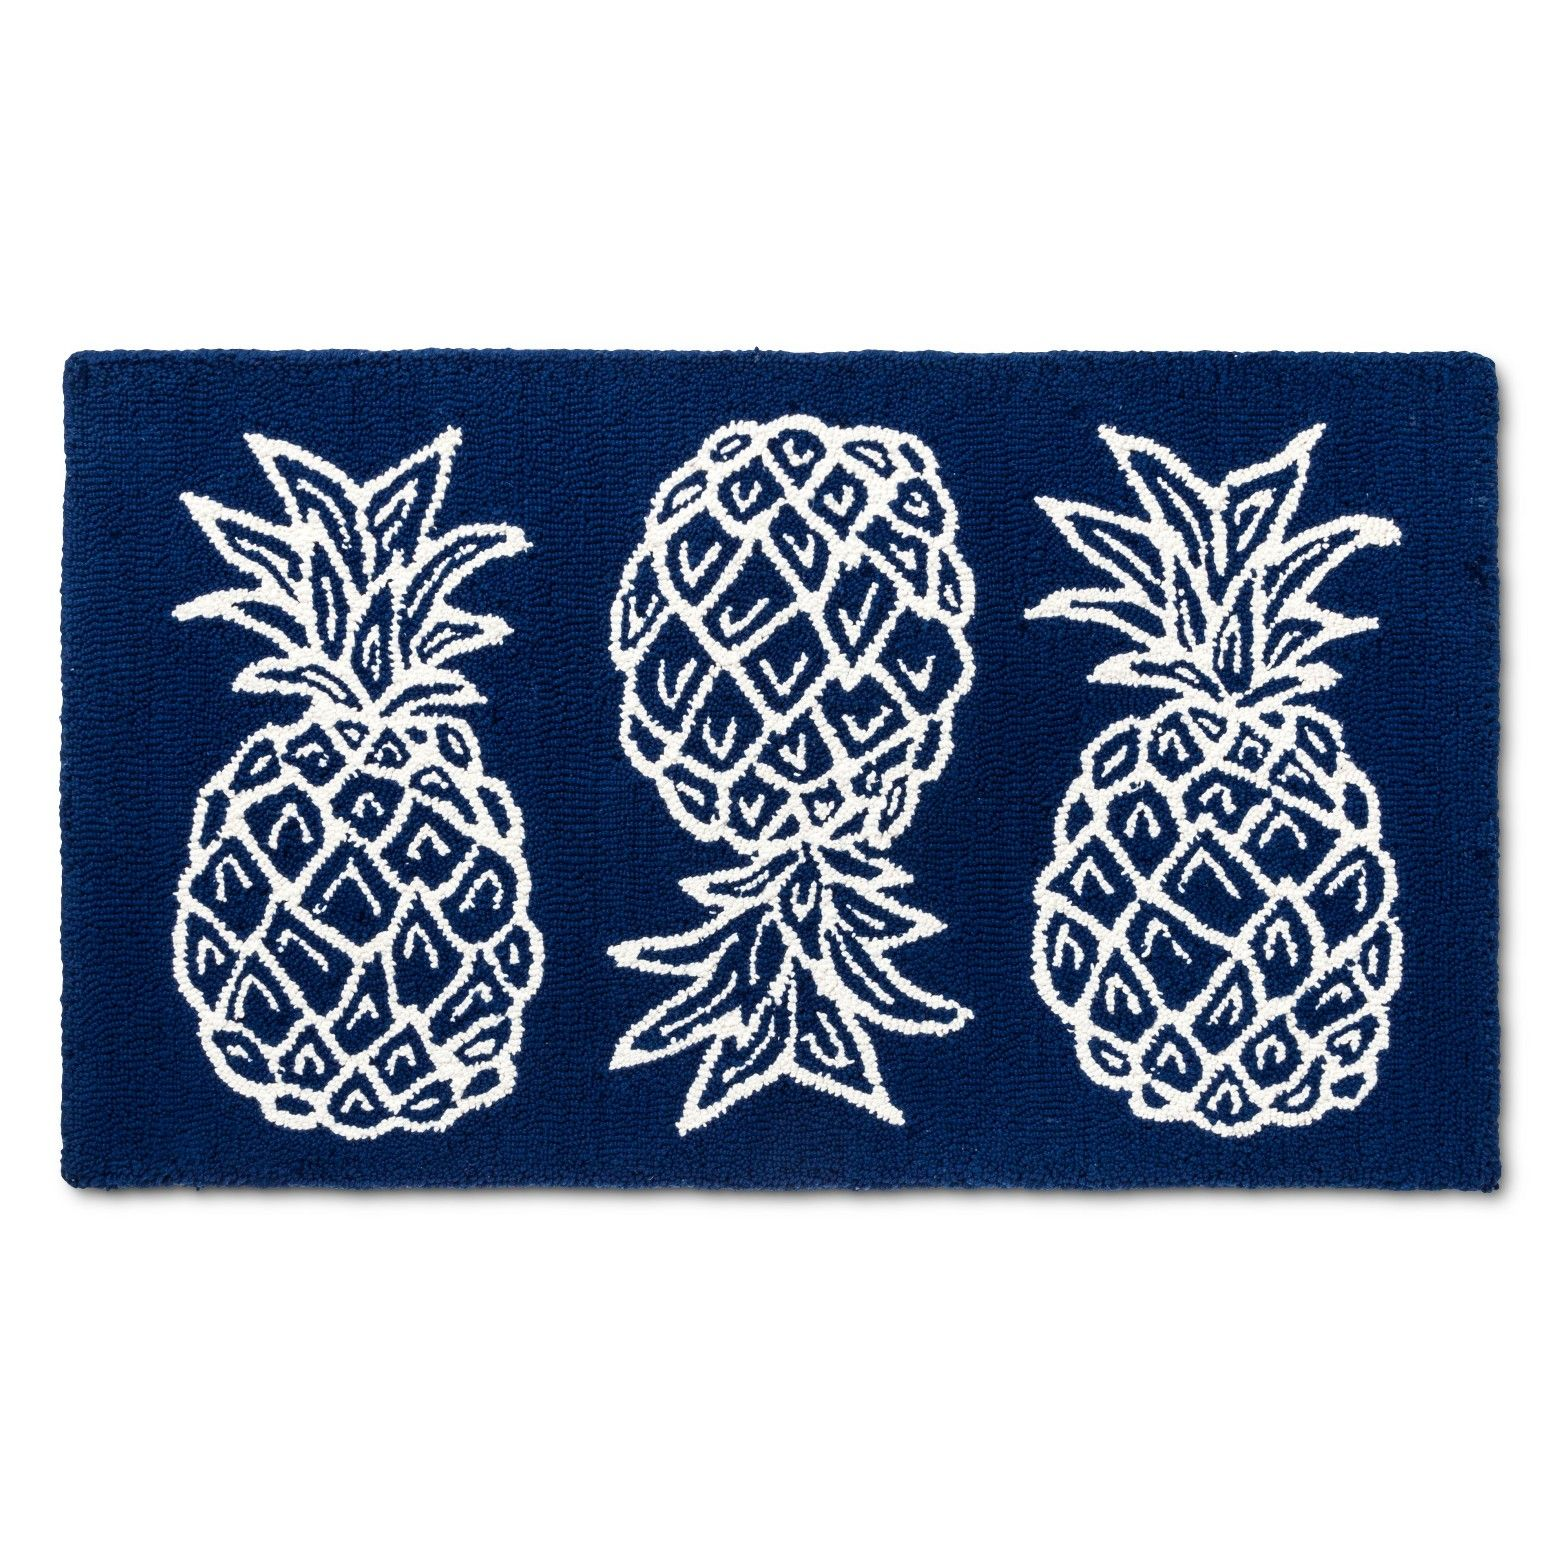 A Great Addition To A Kitchen The Blue Fruit Rugs From Threshold Add Pattern And Style This Pineapple Area Rug Has A Blue Rugs Blue Fruits Kitchen Area Rugs